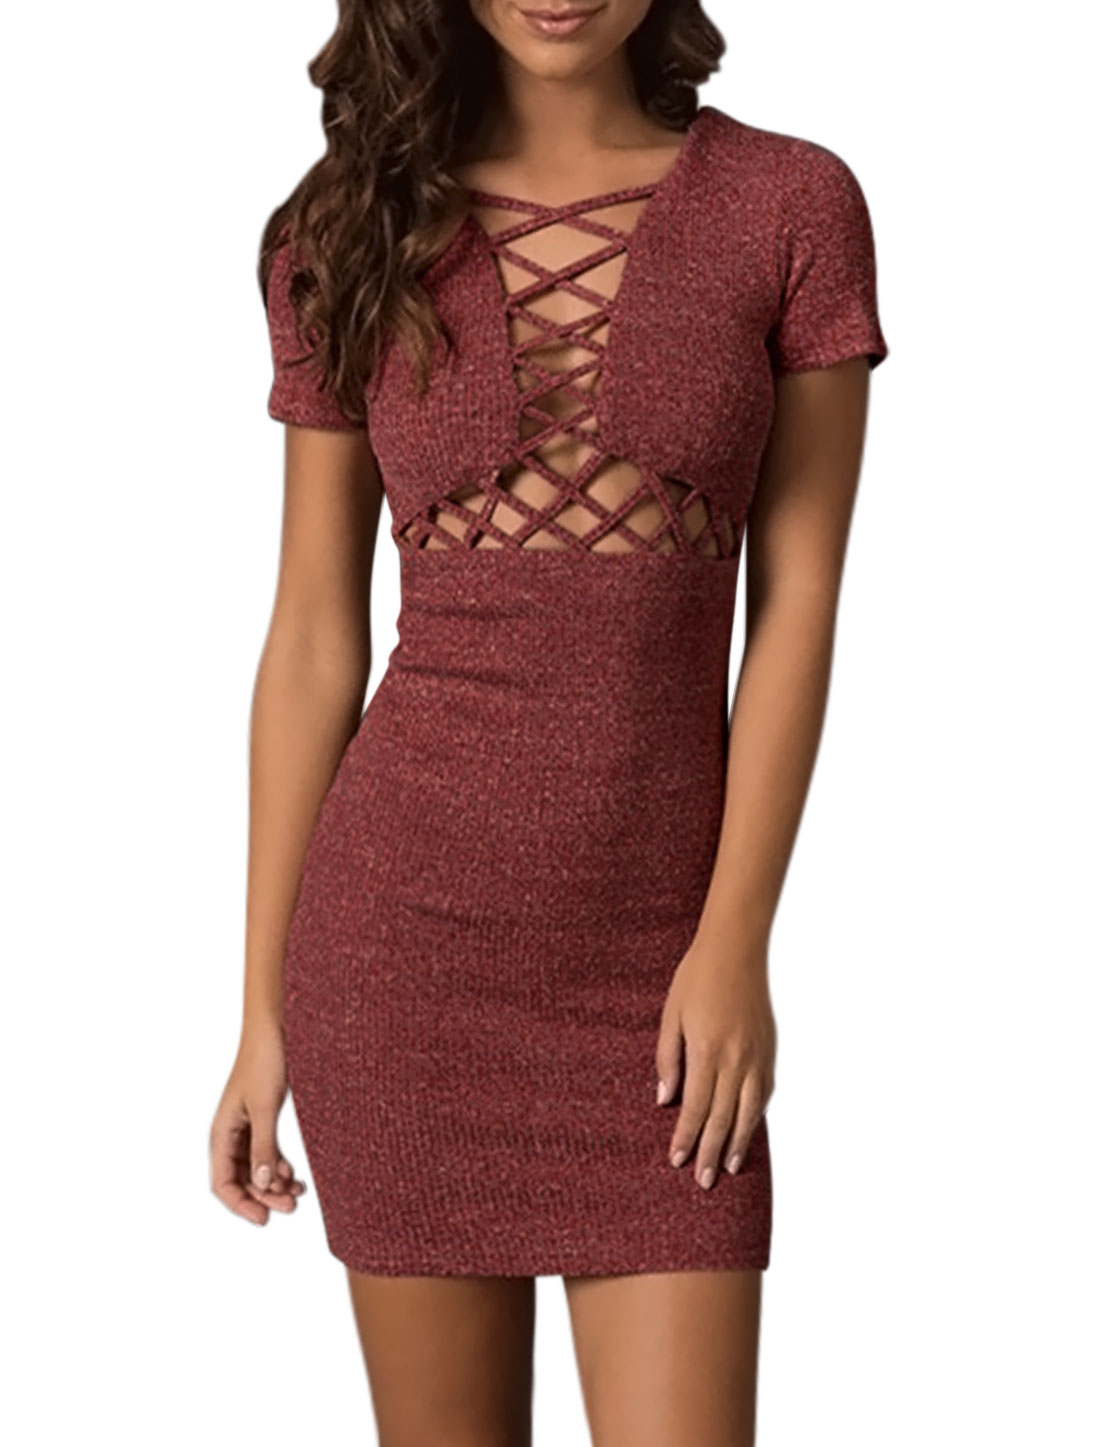 Women Short Sleeves Lattice Design Slim Fit Tunic Knit Dress Red S